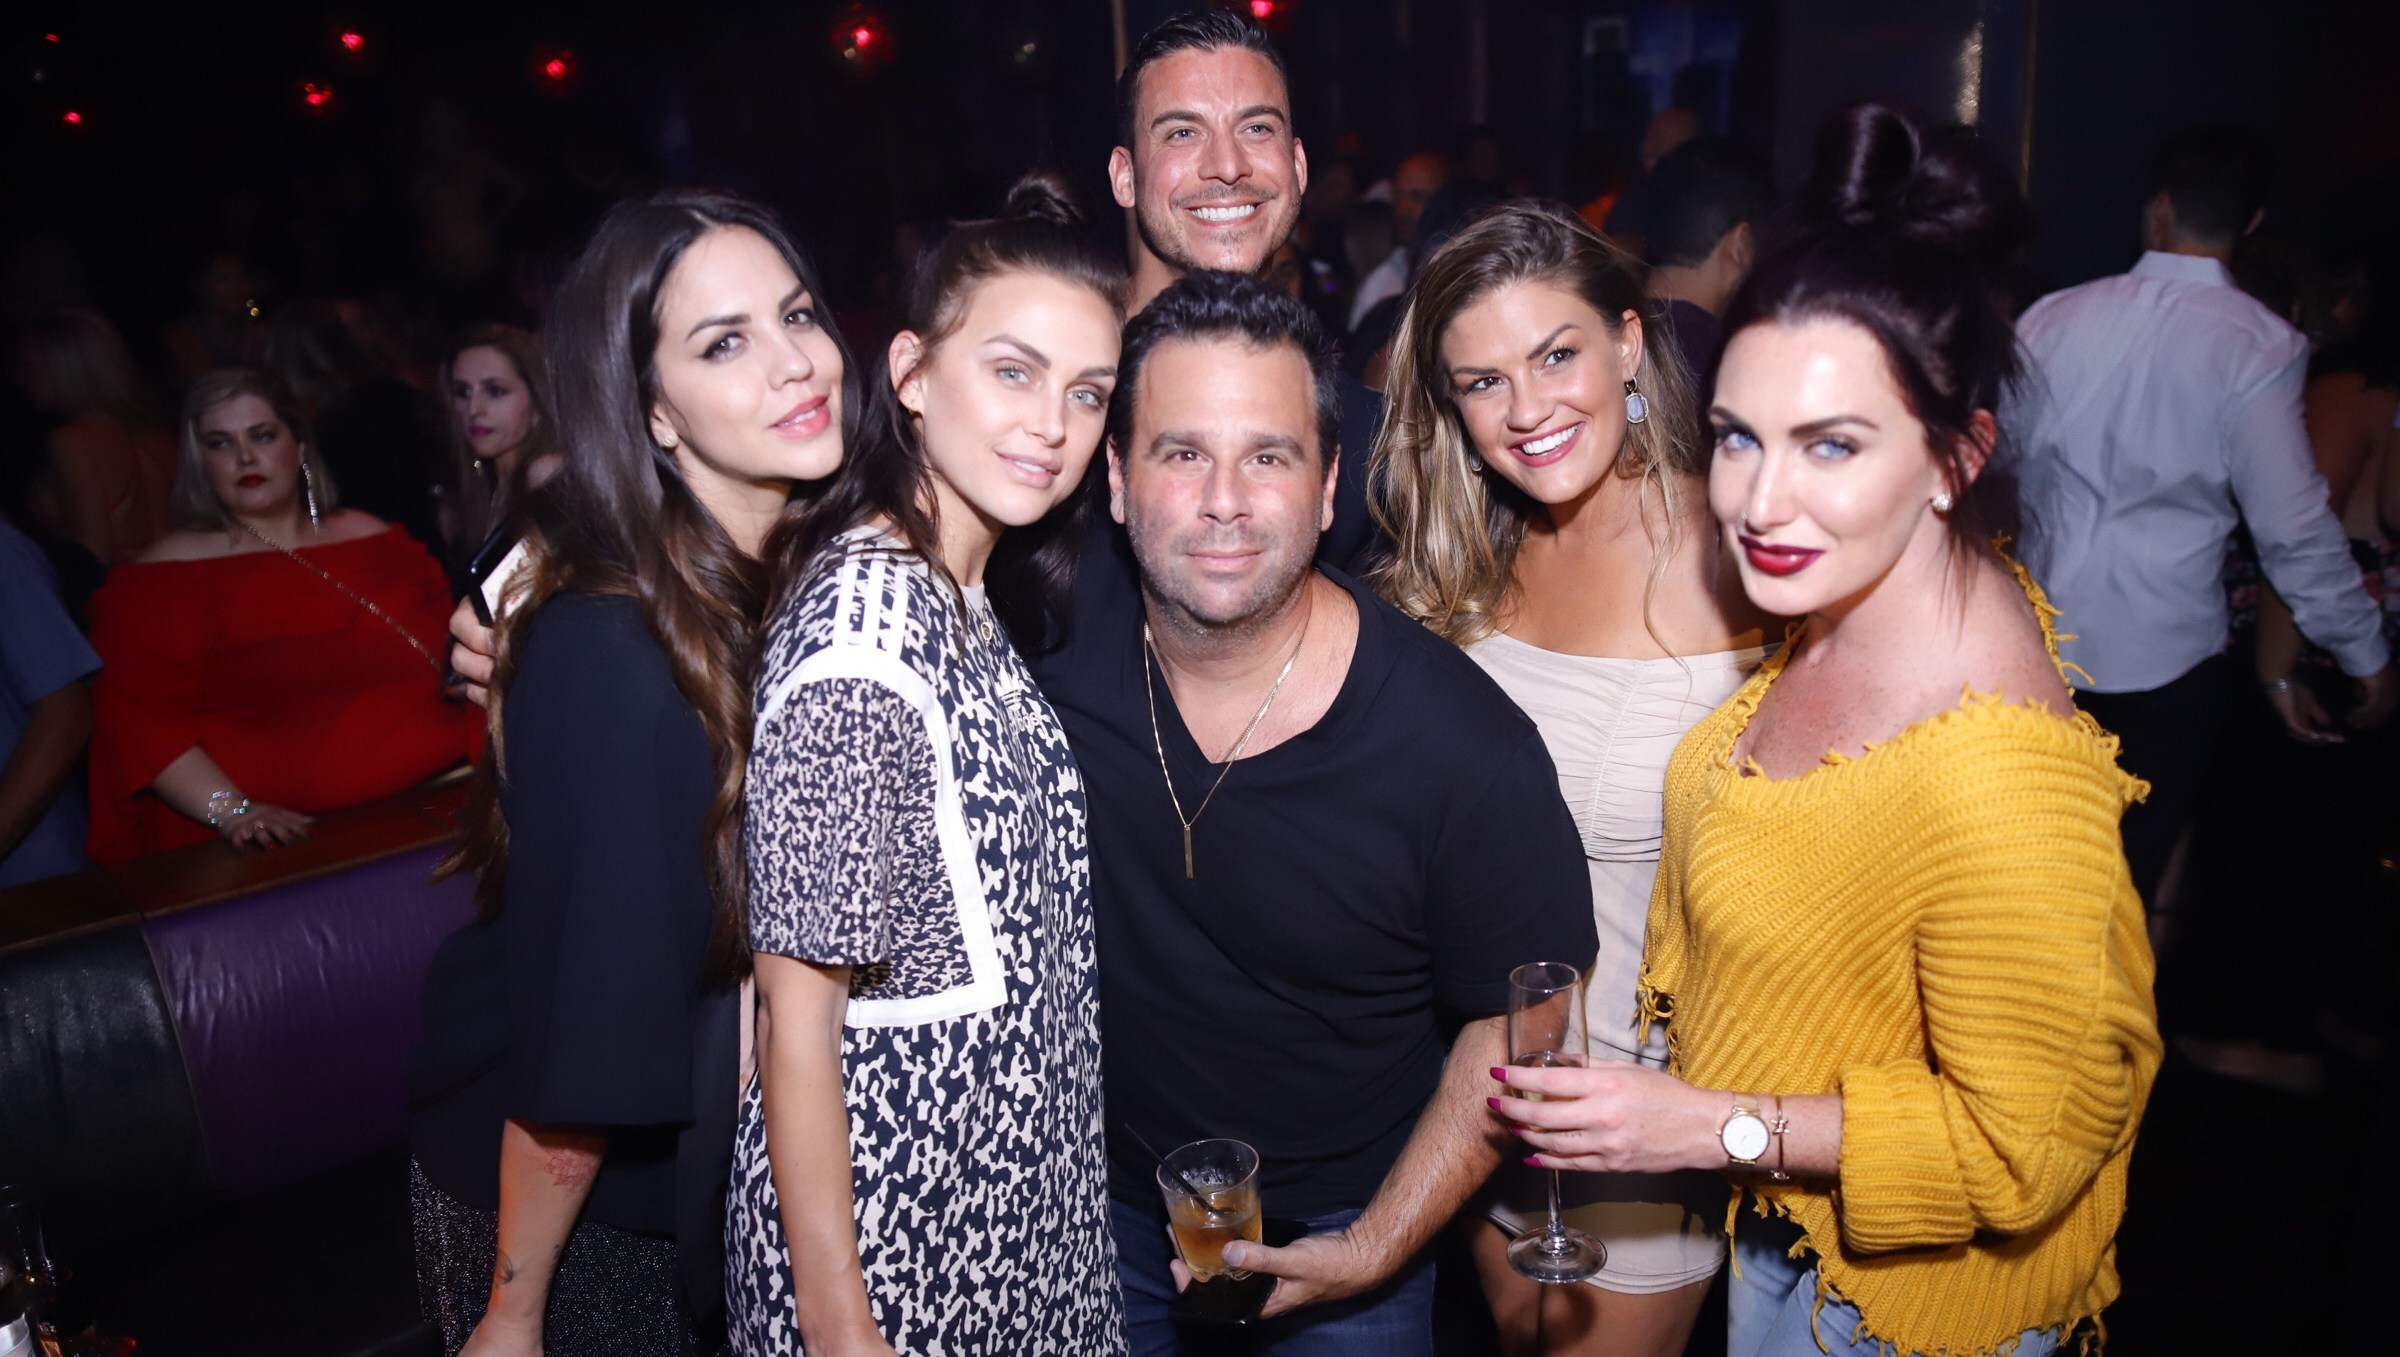 Lala Kent and Randall Emmett celebrated their engagement in Las Vegas on September 2, 2018